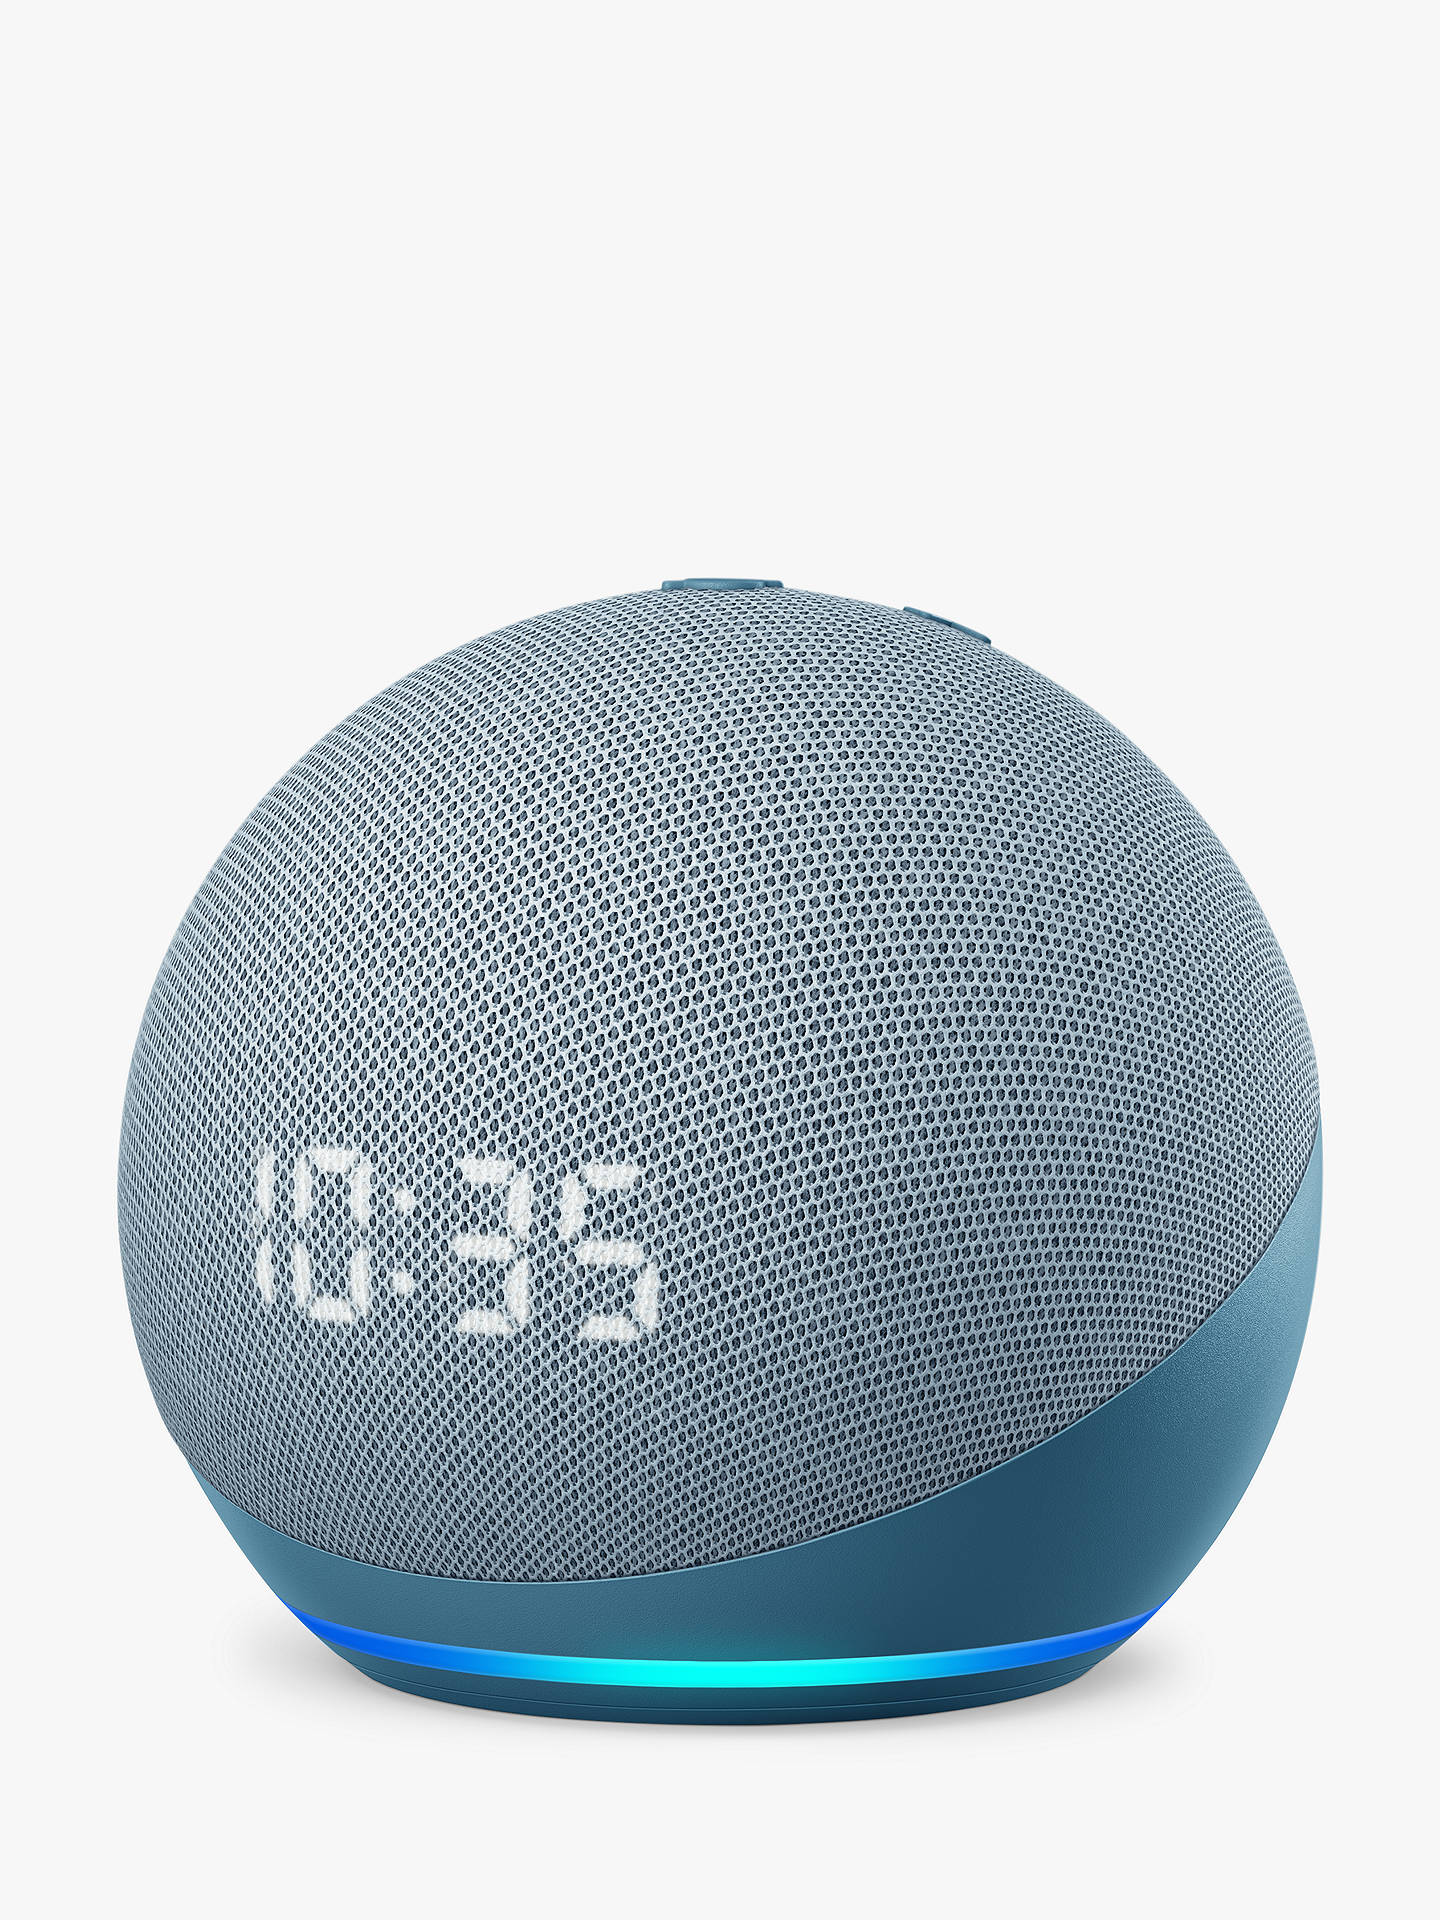 Buy Amazon Echo Dot Smart Speaker with Clock and Alexa Voice Recognition & Control, 4th Generation, Twilight Blue Online at johnlewis.com